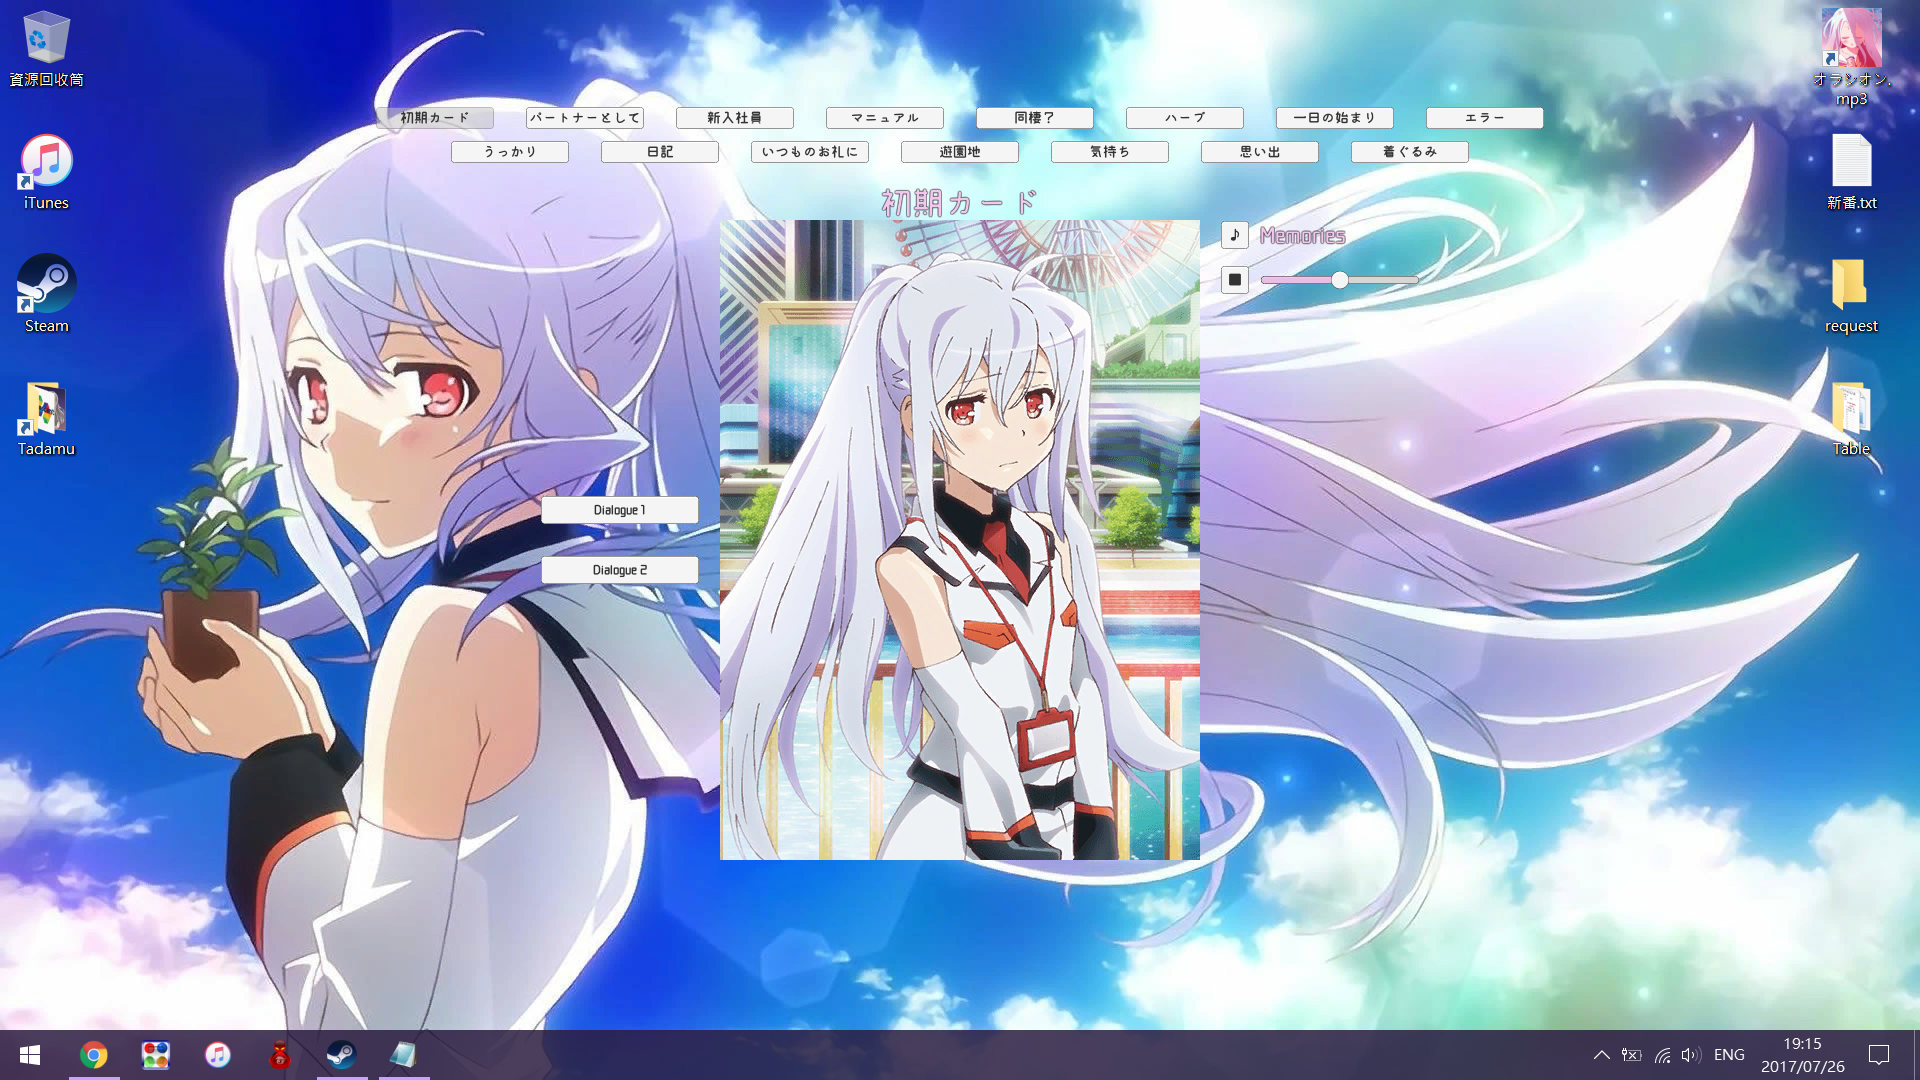 Wallpaper Engine - Plastic Memories - Isla interactive wallpaper